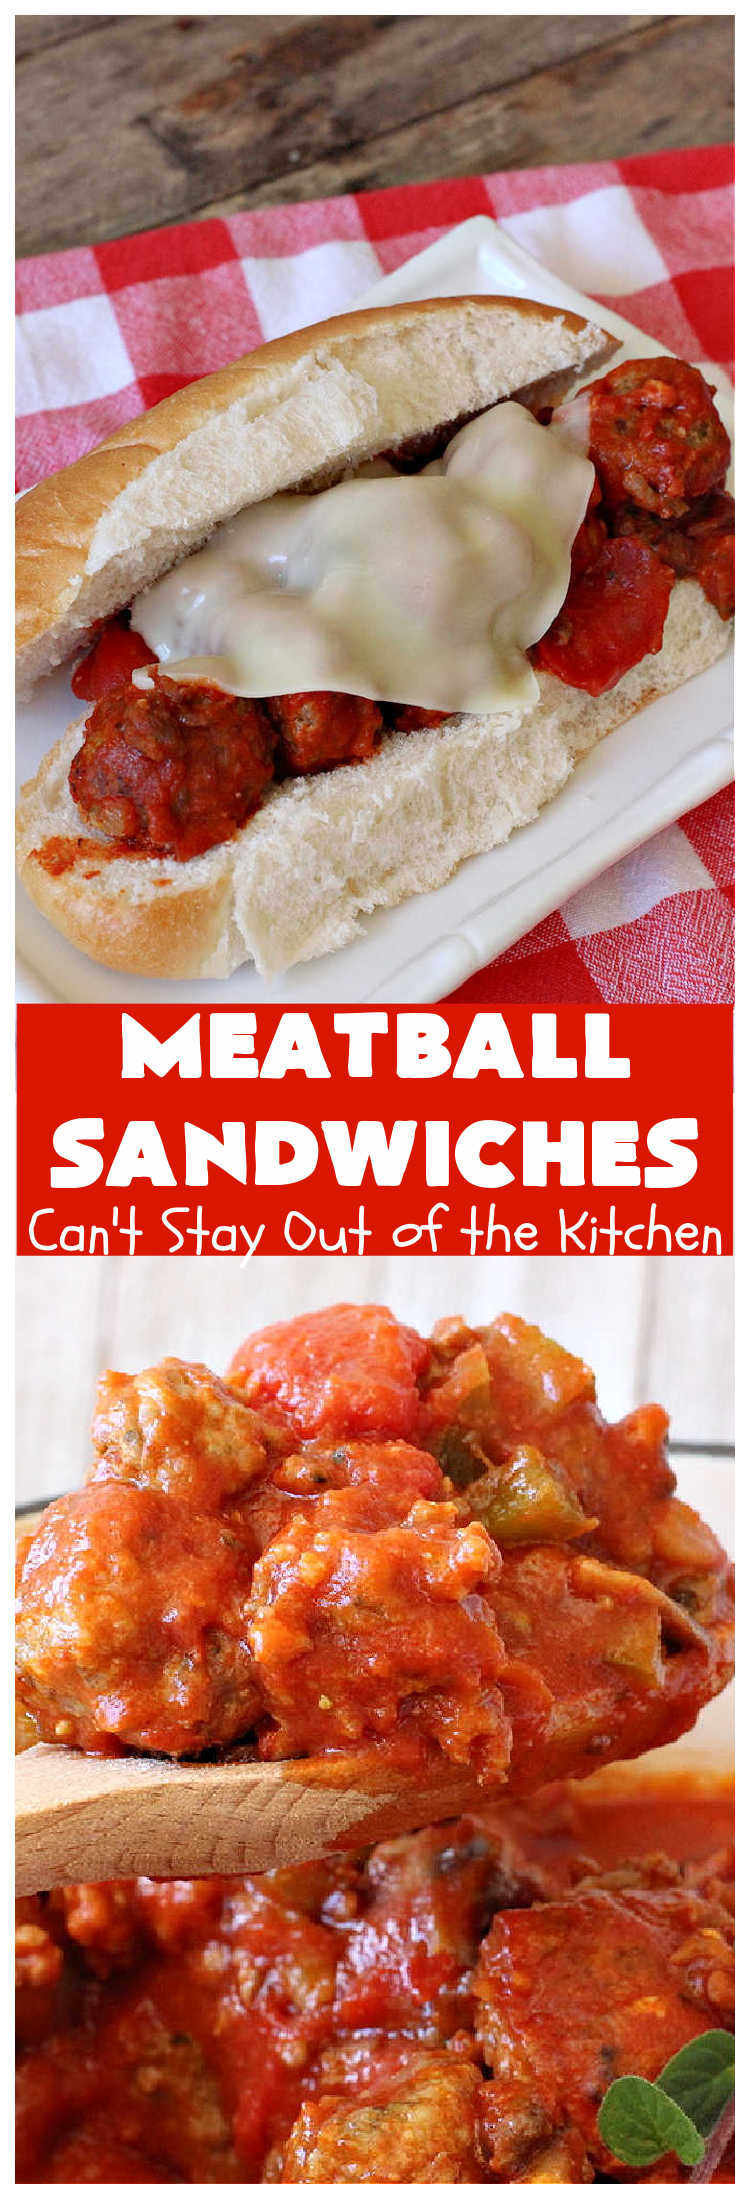 Meatball Sandwiches | Can't Stay Out of the Kitchen | Amazing #meatballs & sauce to spread over hoagie rolls. Adding melted #ProvoloneCheese makes them spectacular. Great for #tailgating parties. So easy for weekend dinners. #beef #sandwiches #MarinaraSauce #ItalianSausage #MeatballSandwiches